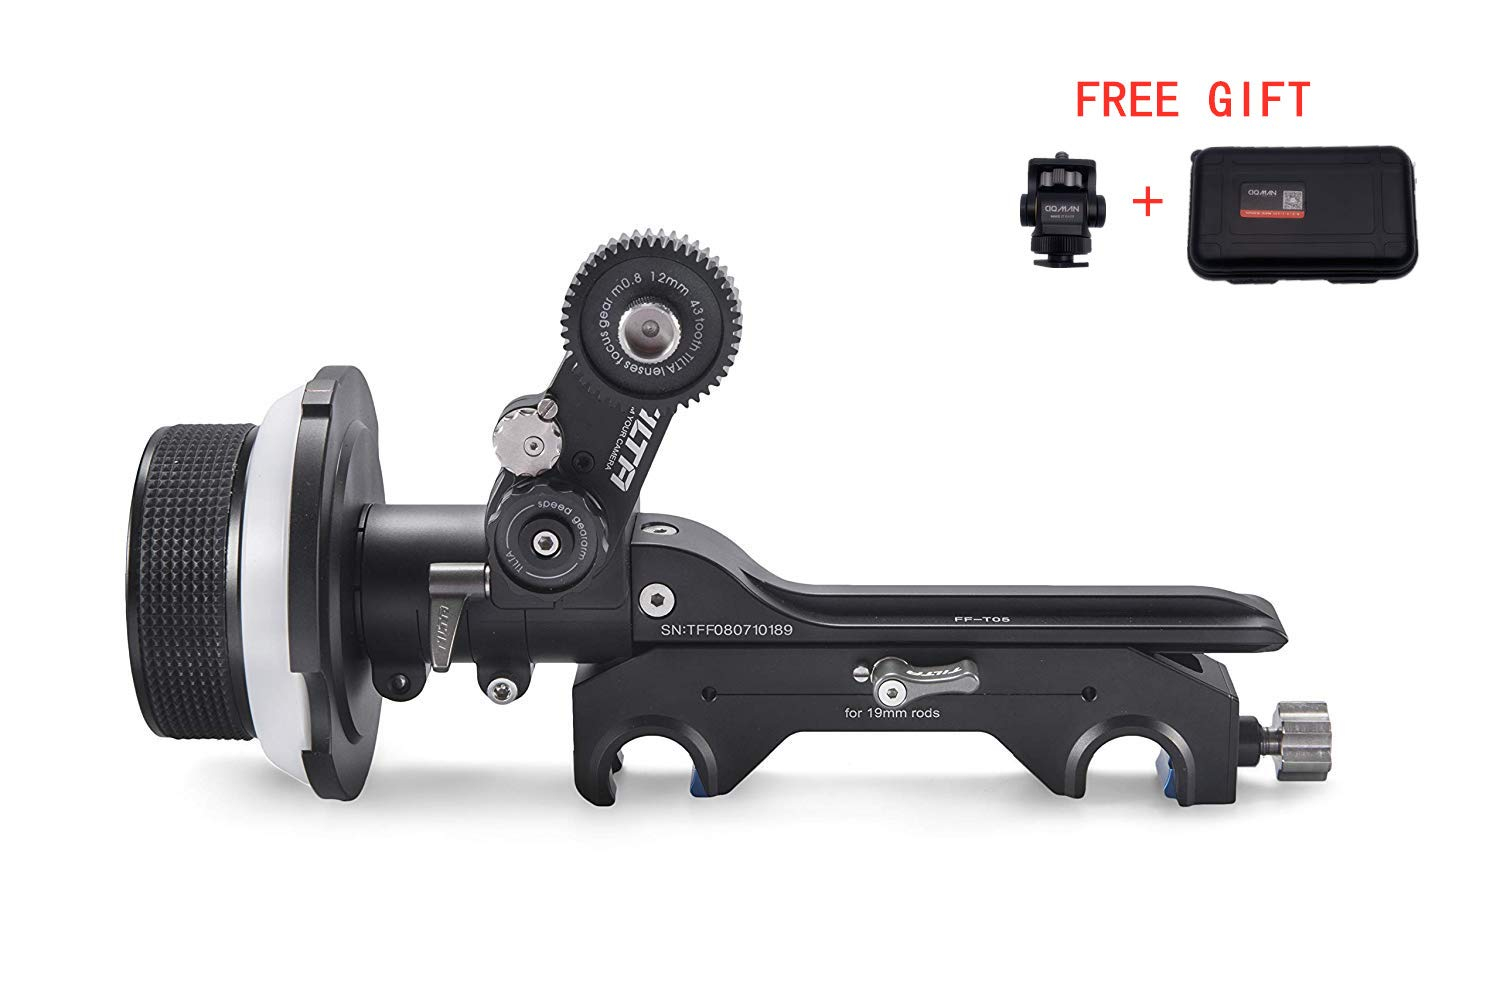 TILTA FF-T05 Single-Sided Cinema Follow Focus kit (with Safety case) for DSLR, Mirrorless, and Cinema Cameras,Hand Wheel with ARRI Standard Por by Tilta